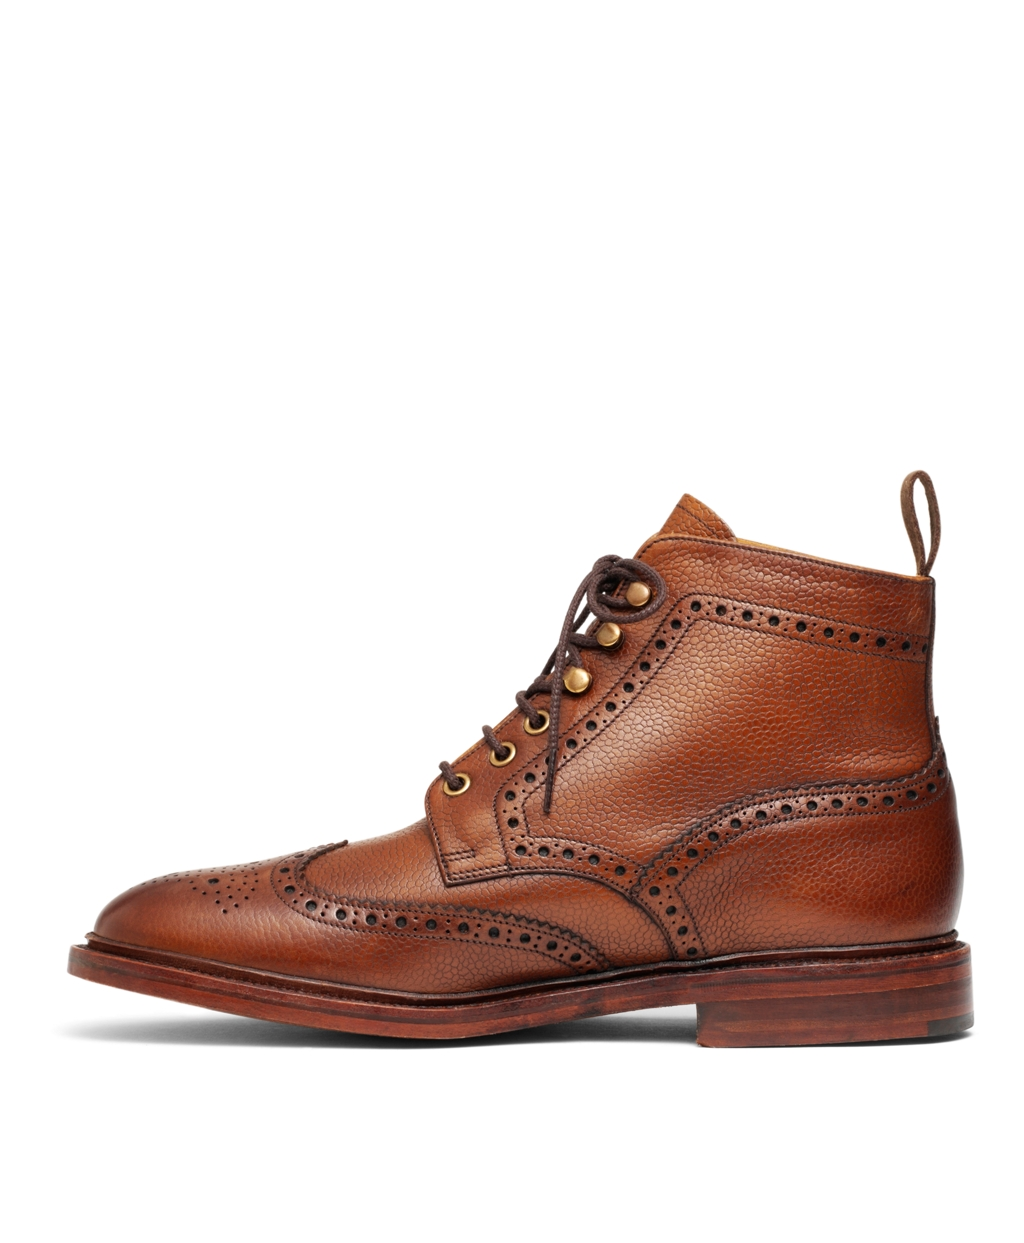 What To Wear With Brown Wingtip Shoes